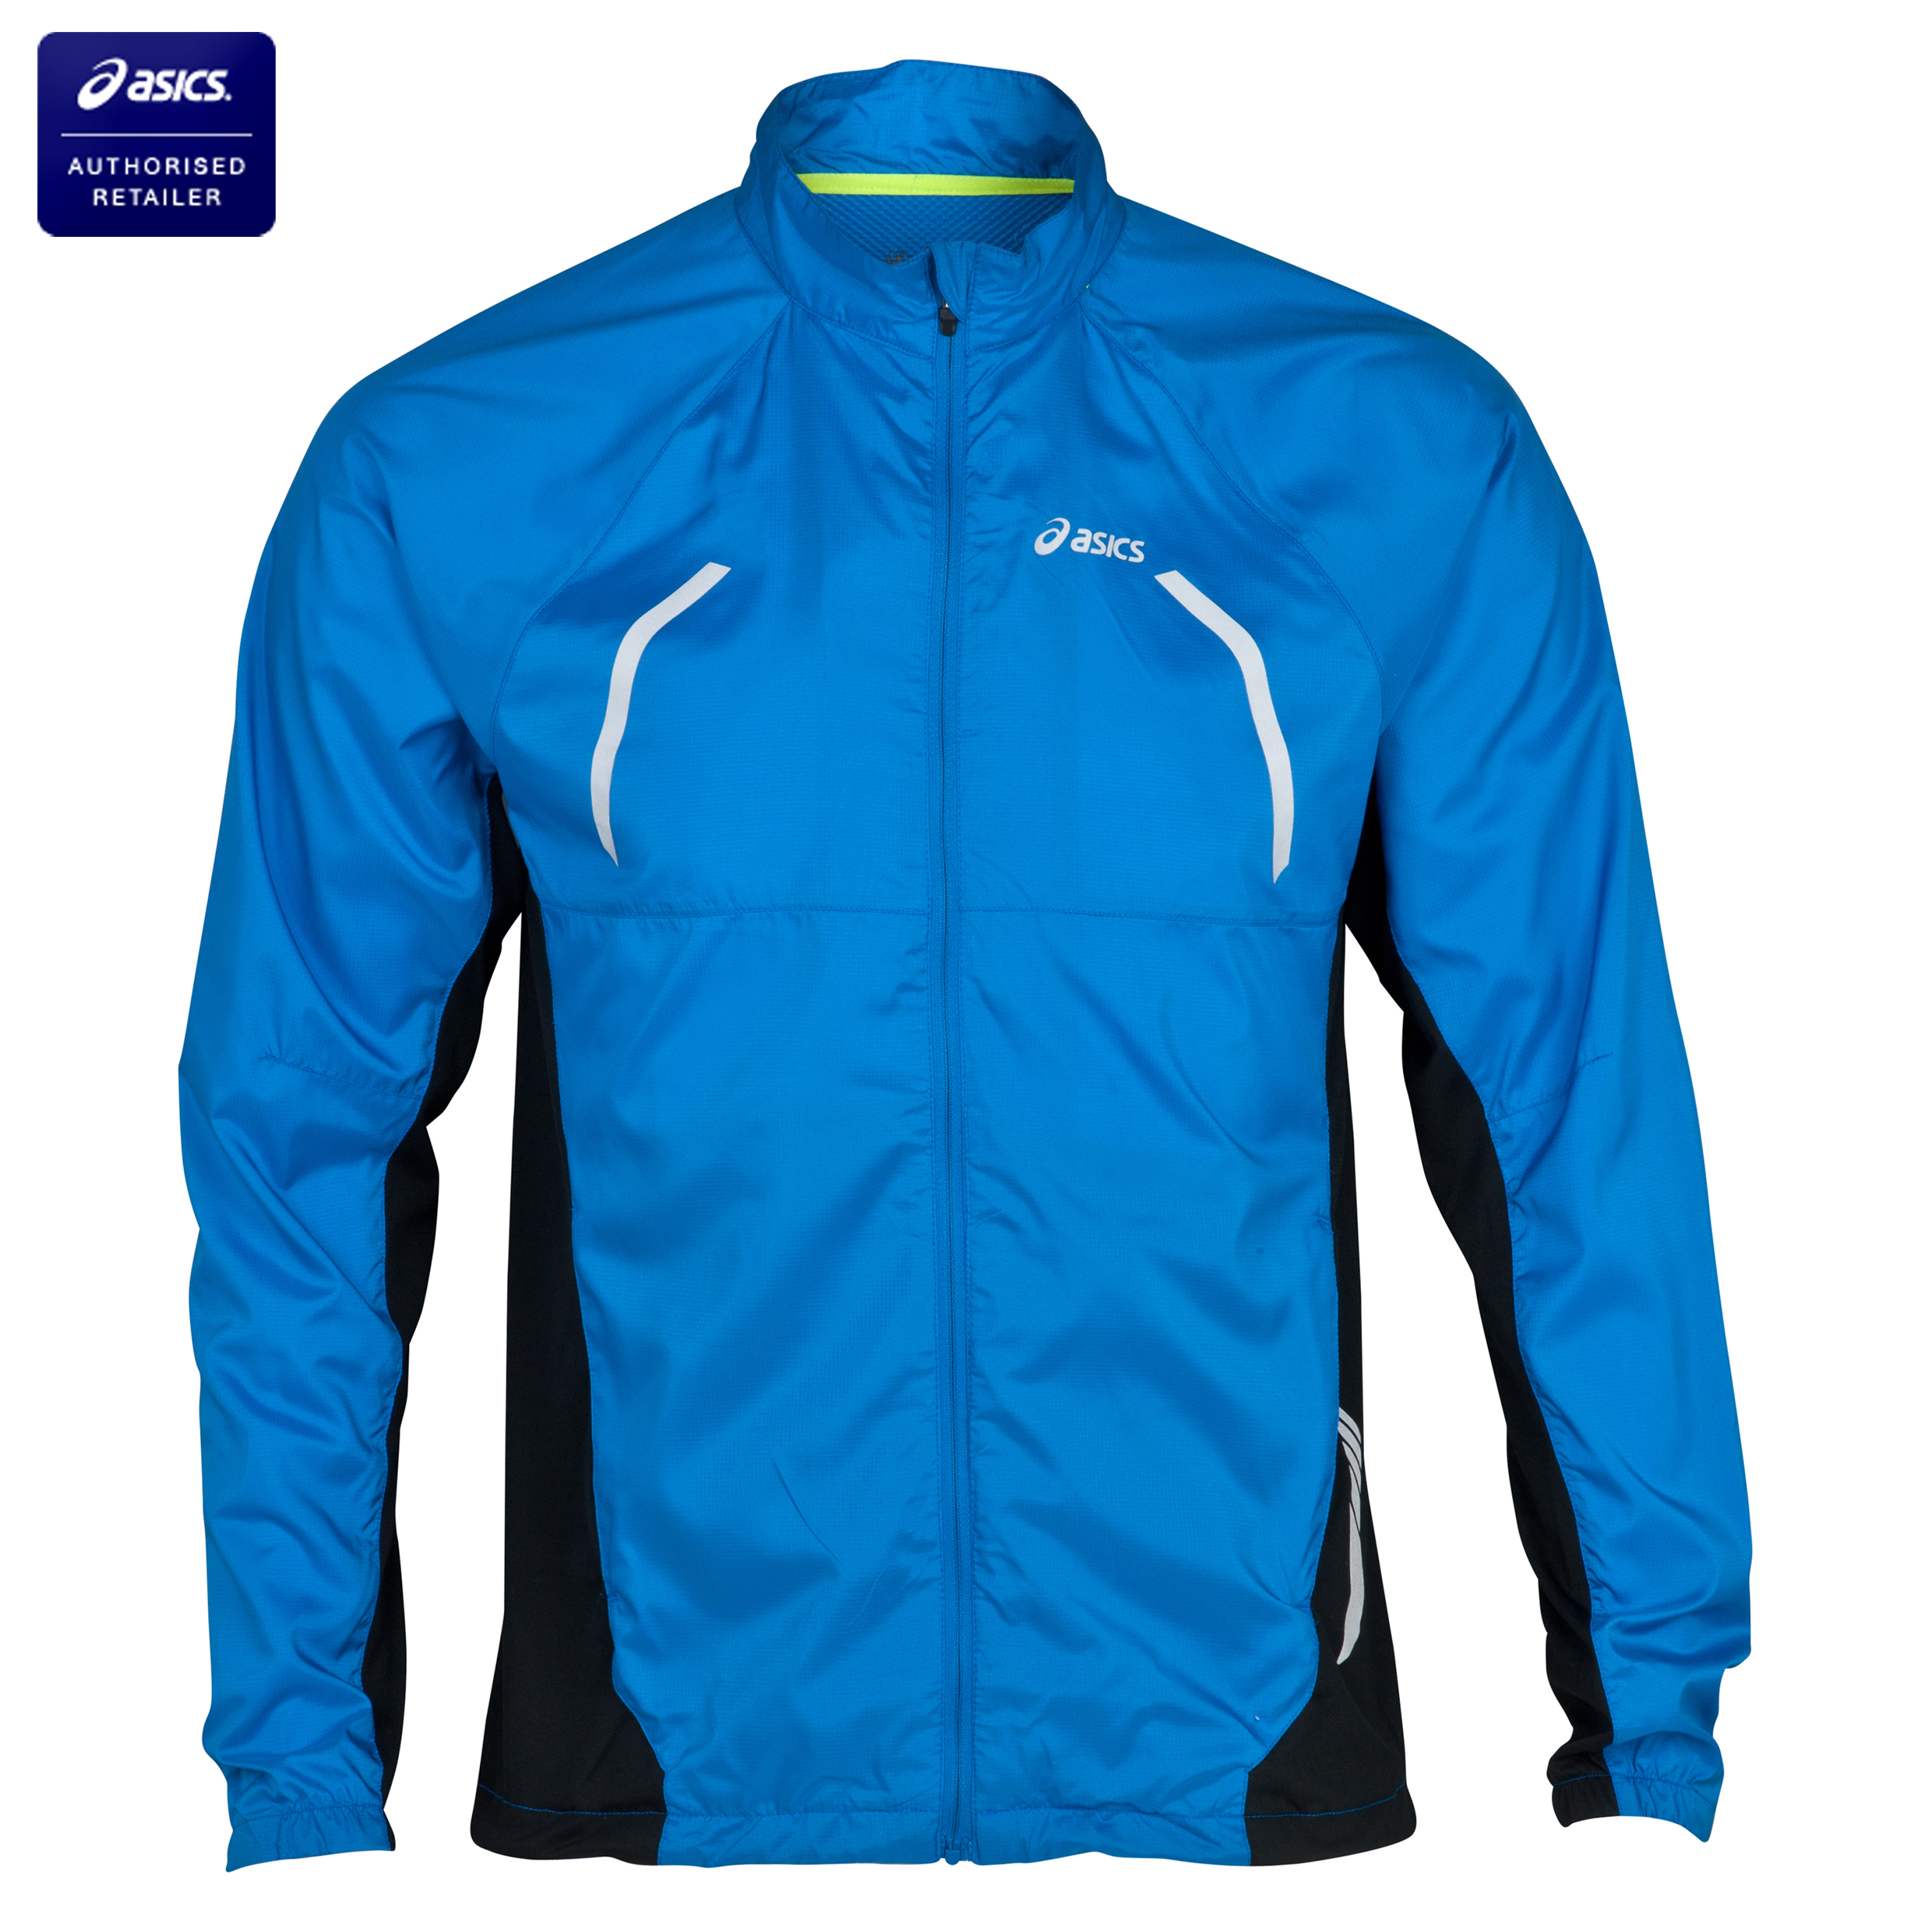 Asics Woven/Knit Lightweight Running Jacket - Skydiver Blue